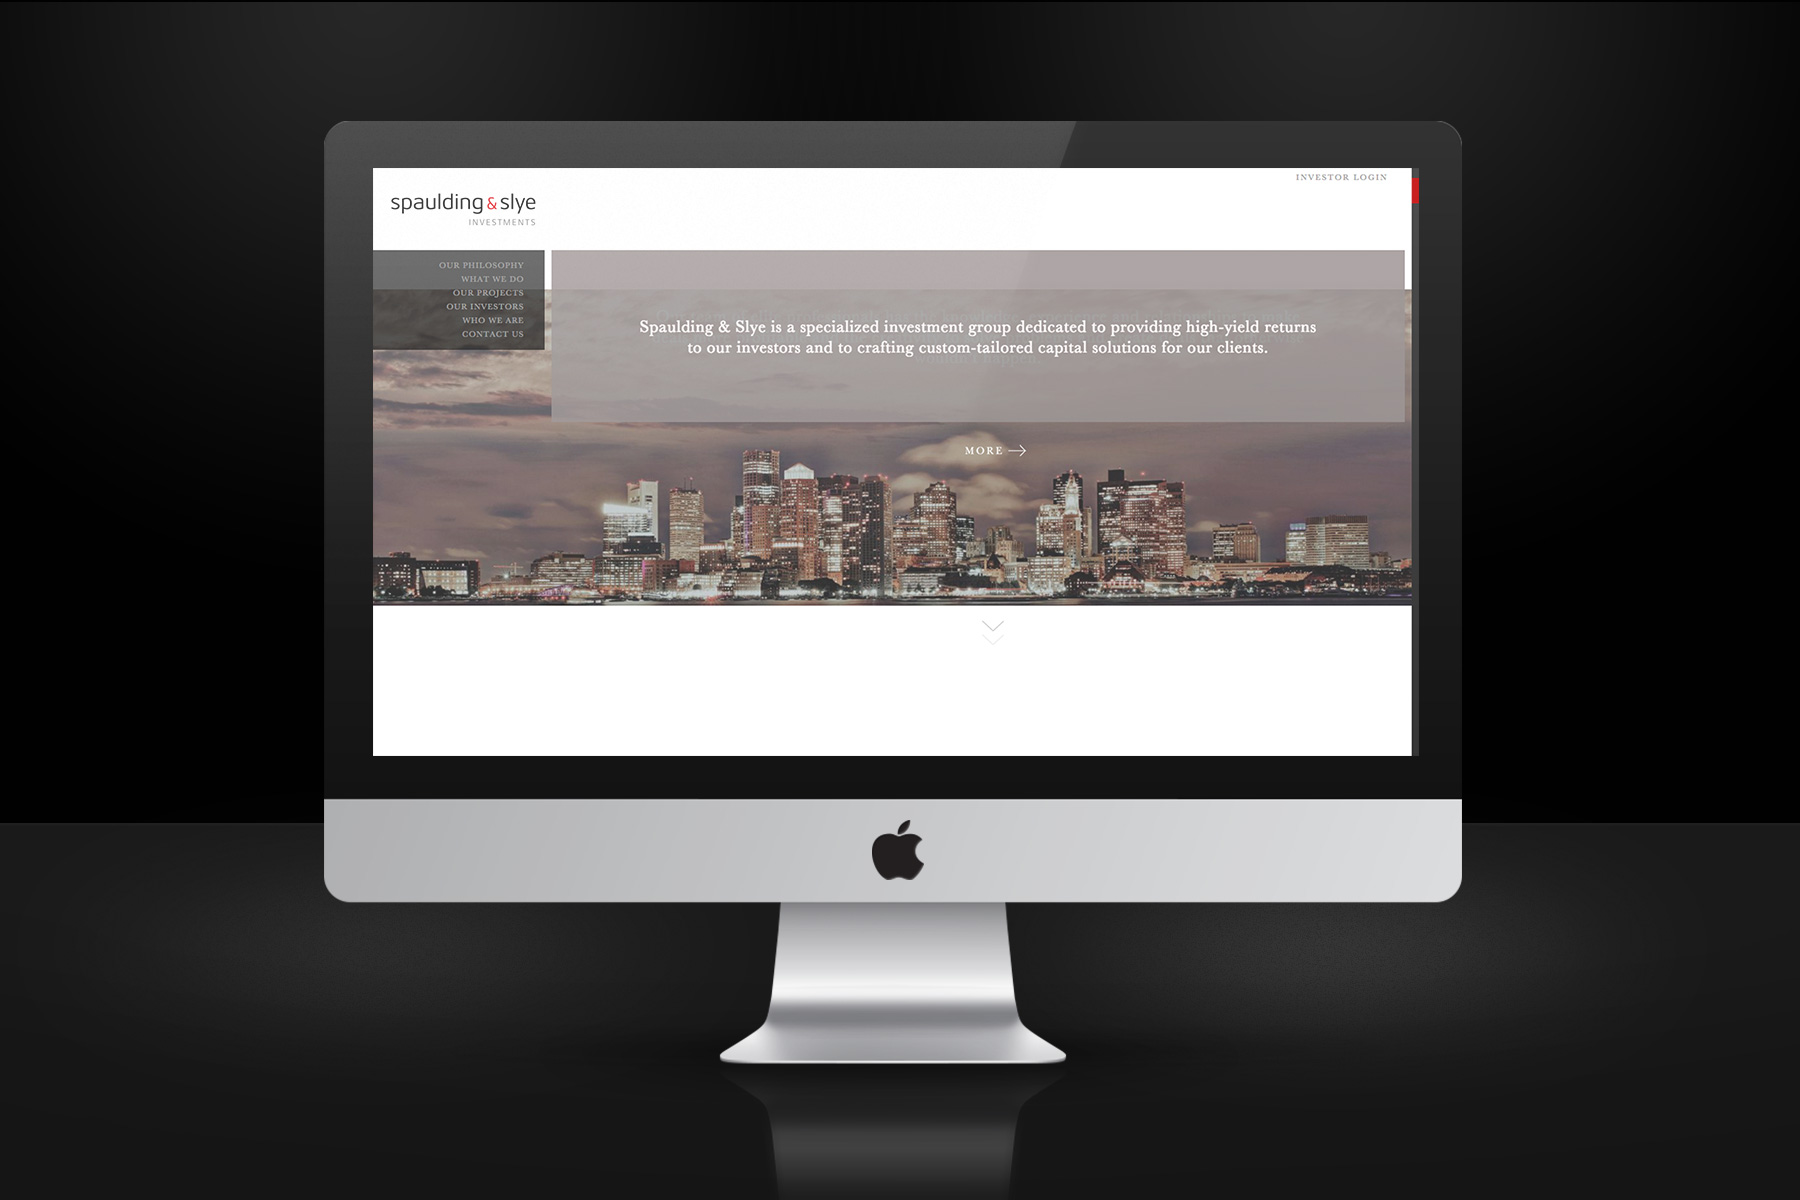 Spaulding & Slye Website